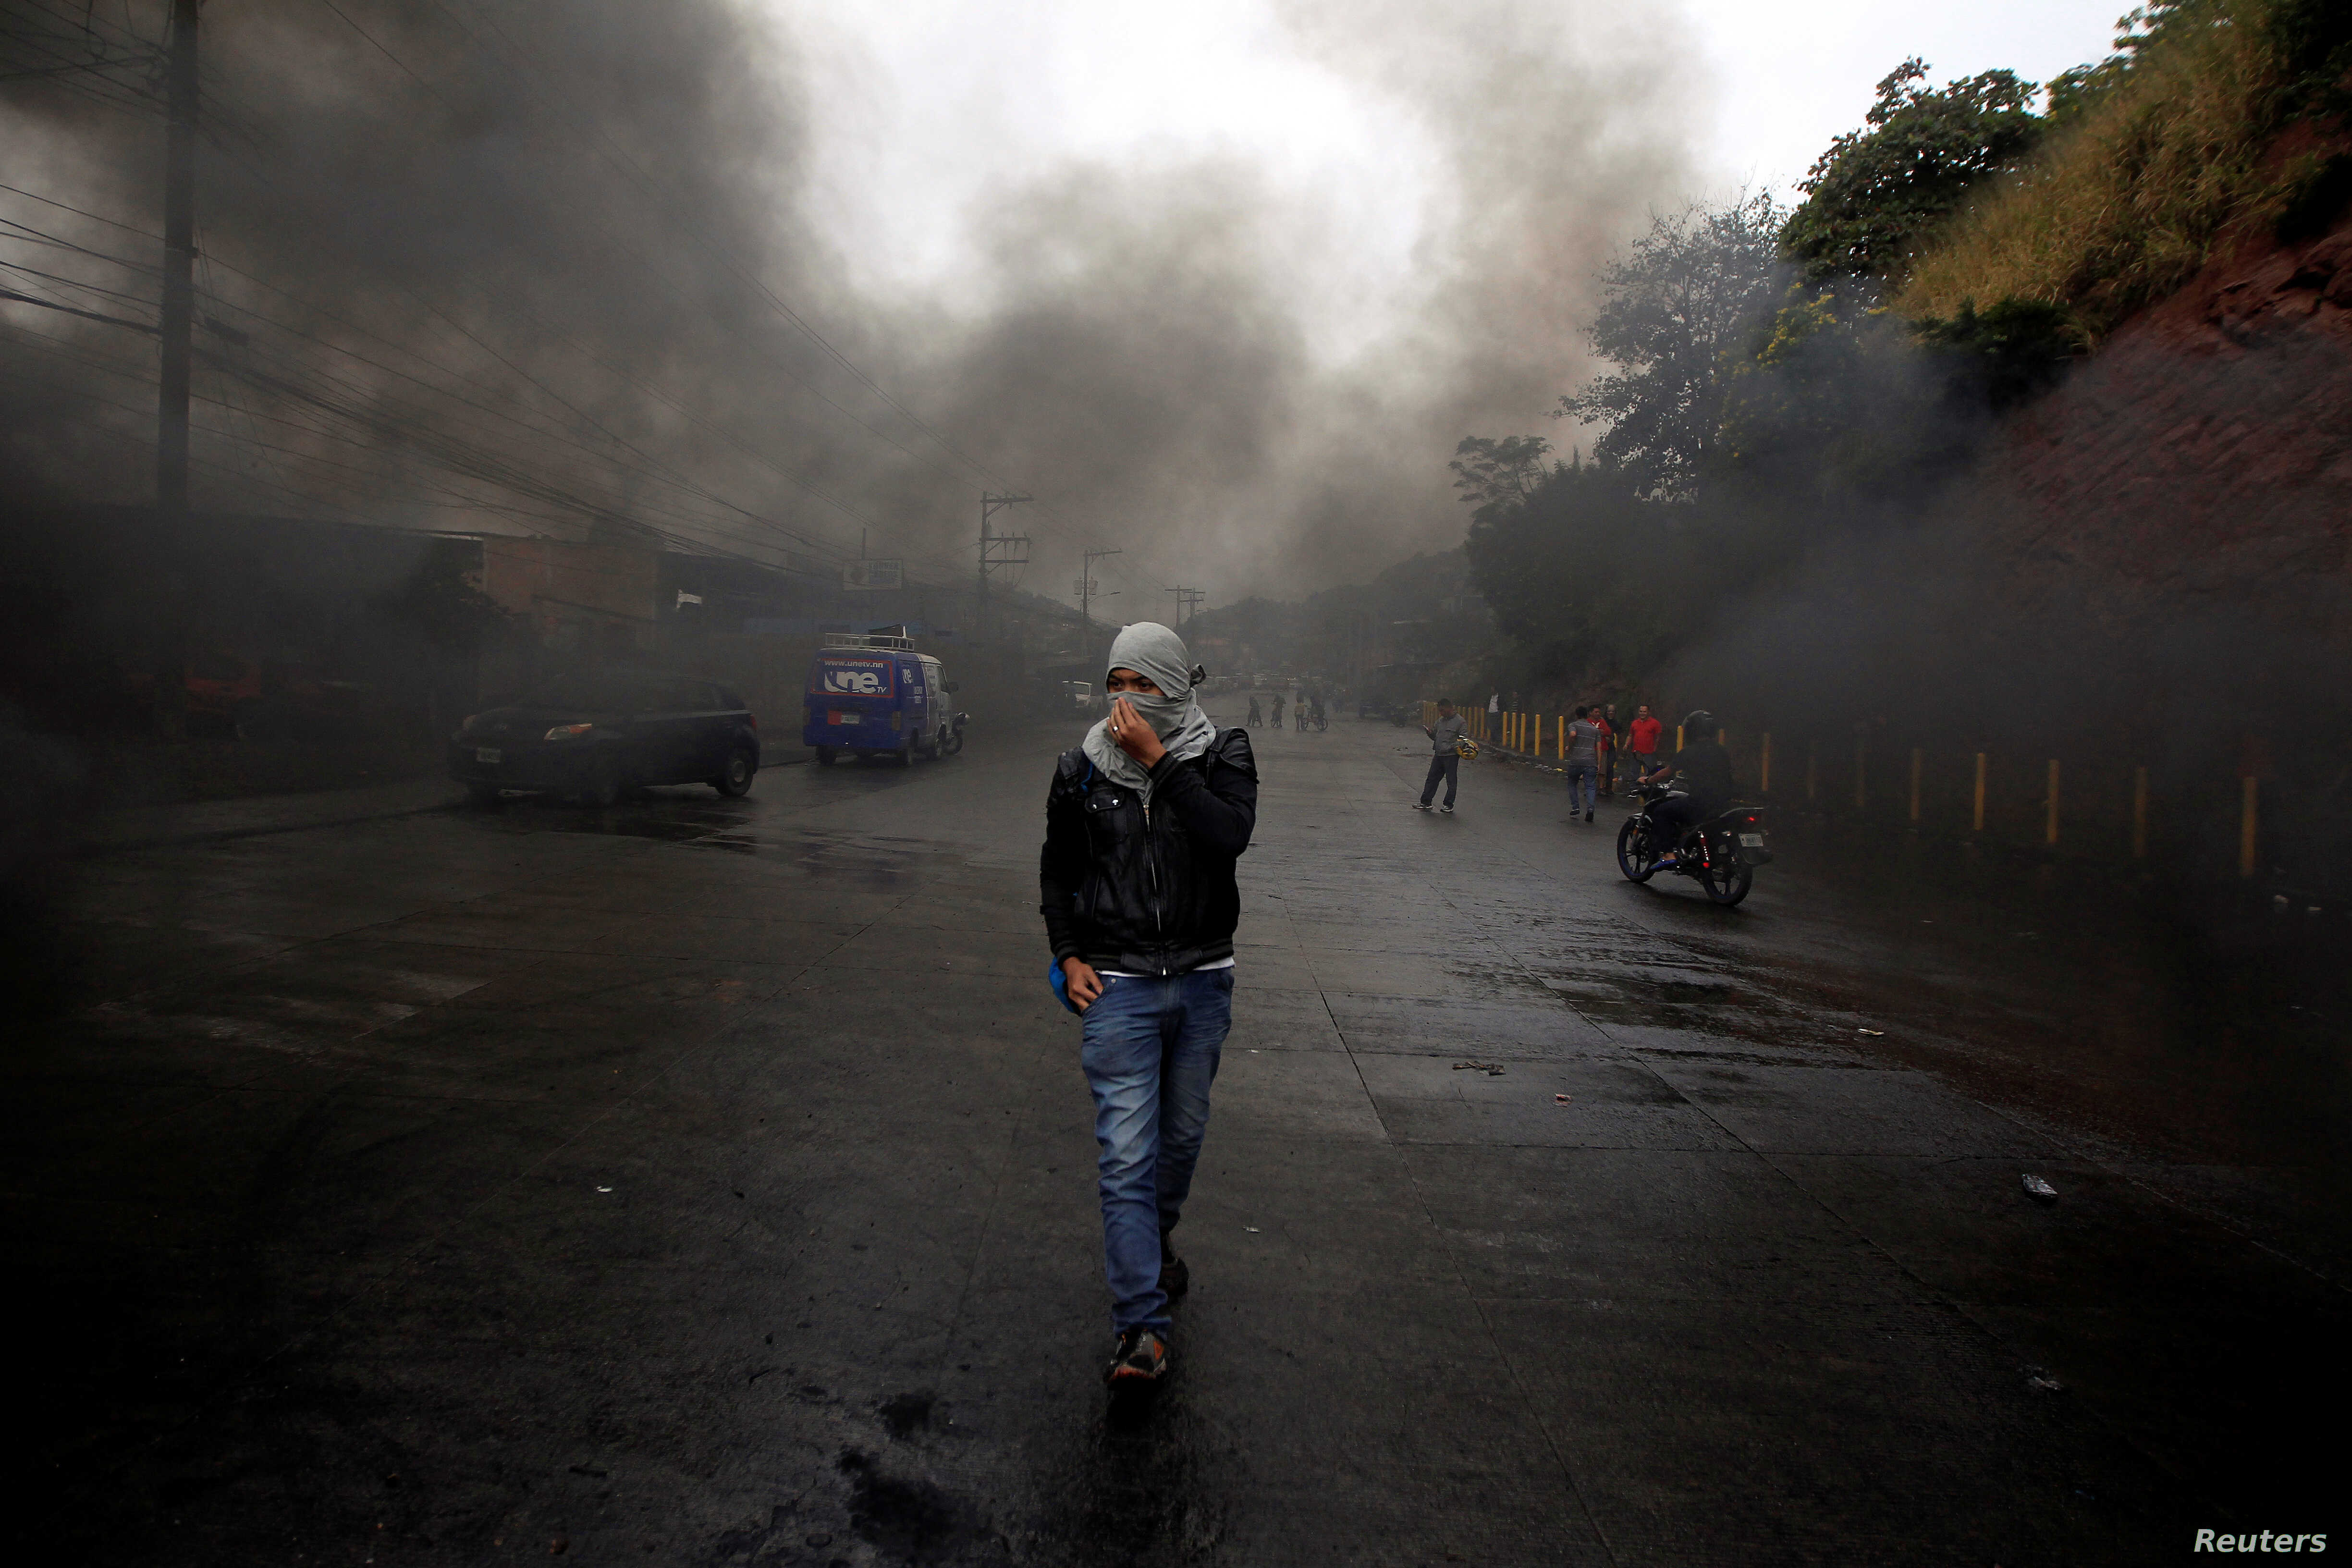 An opposition supporter walks amid smoke during clashes with police after the Organization of American States rejected a declaration of victory for Honduran President Juan Orlando Hernandez in a sharply disputed election, in Tegucigalpa, Dec. 18, 201...